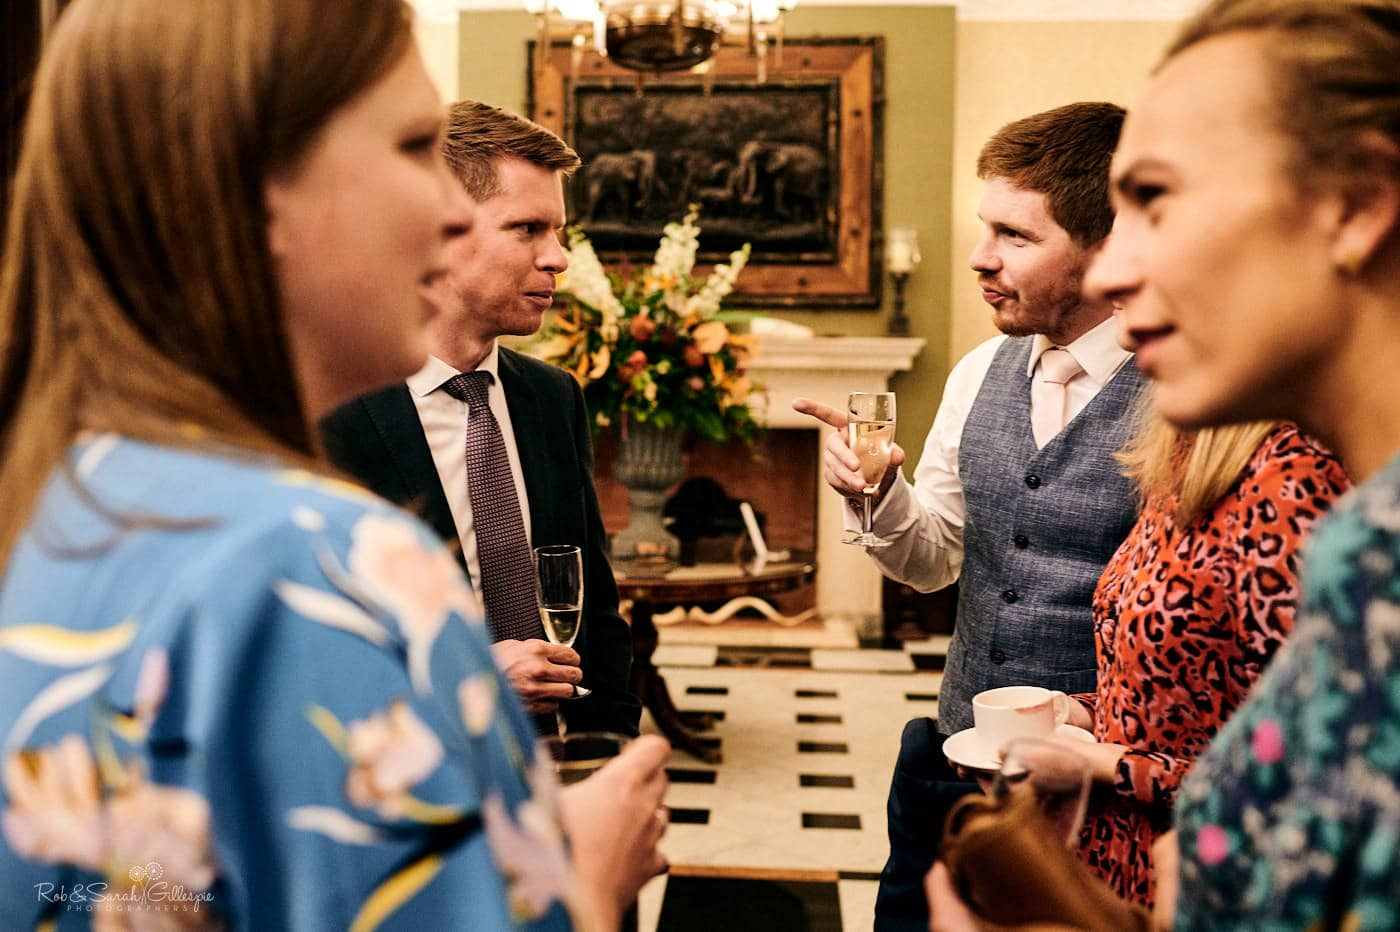 Wedding guests chat after meal at Spring Grove House